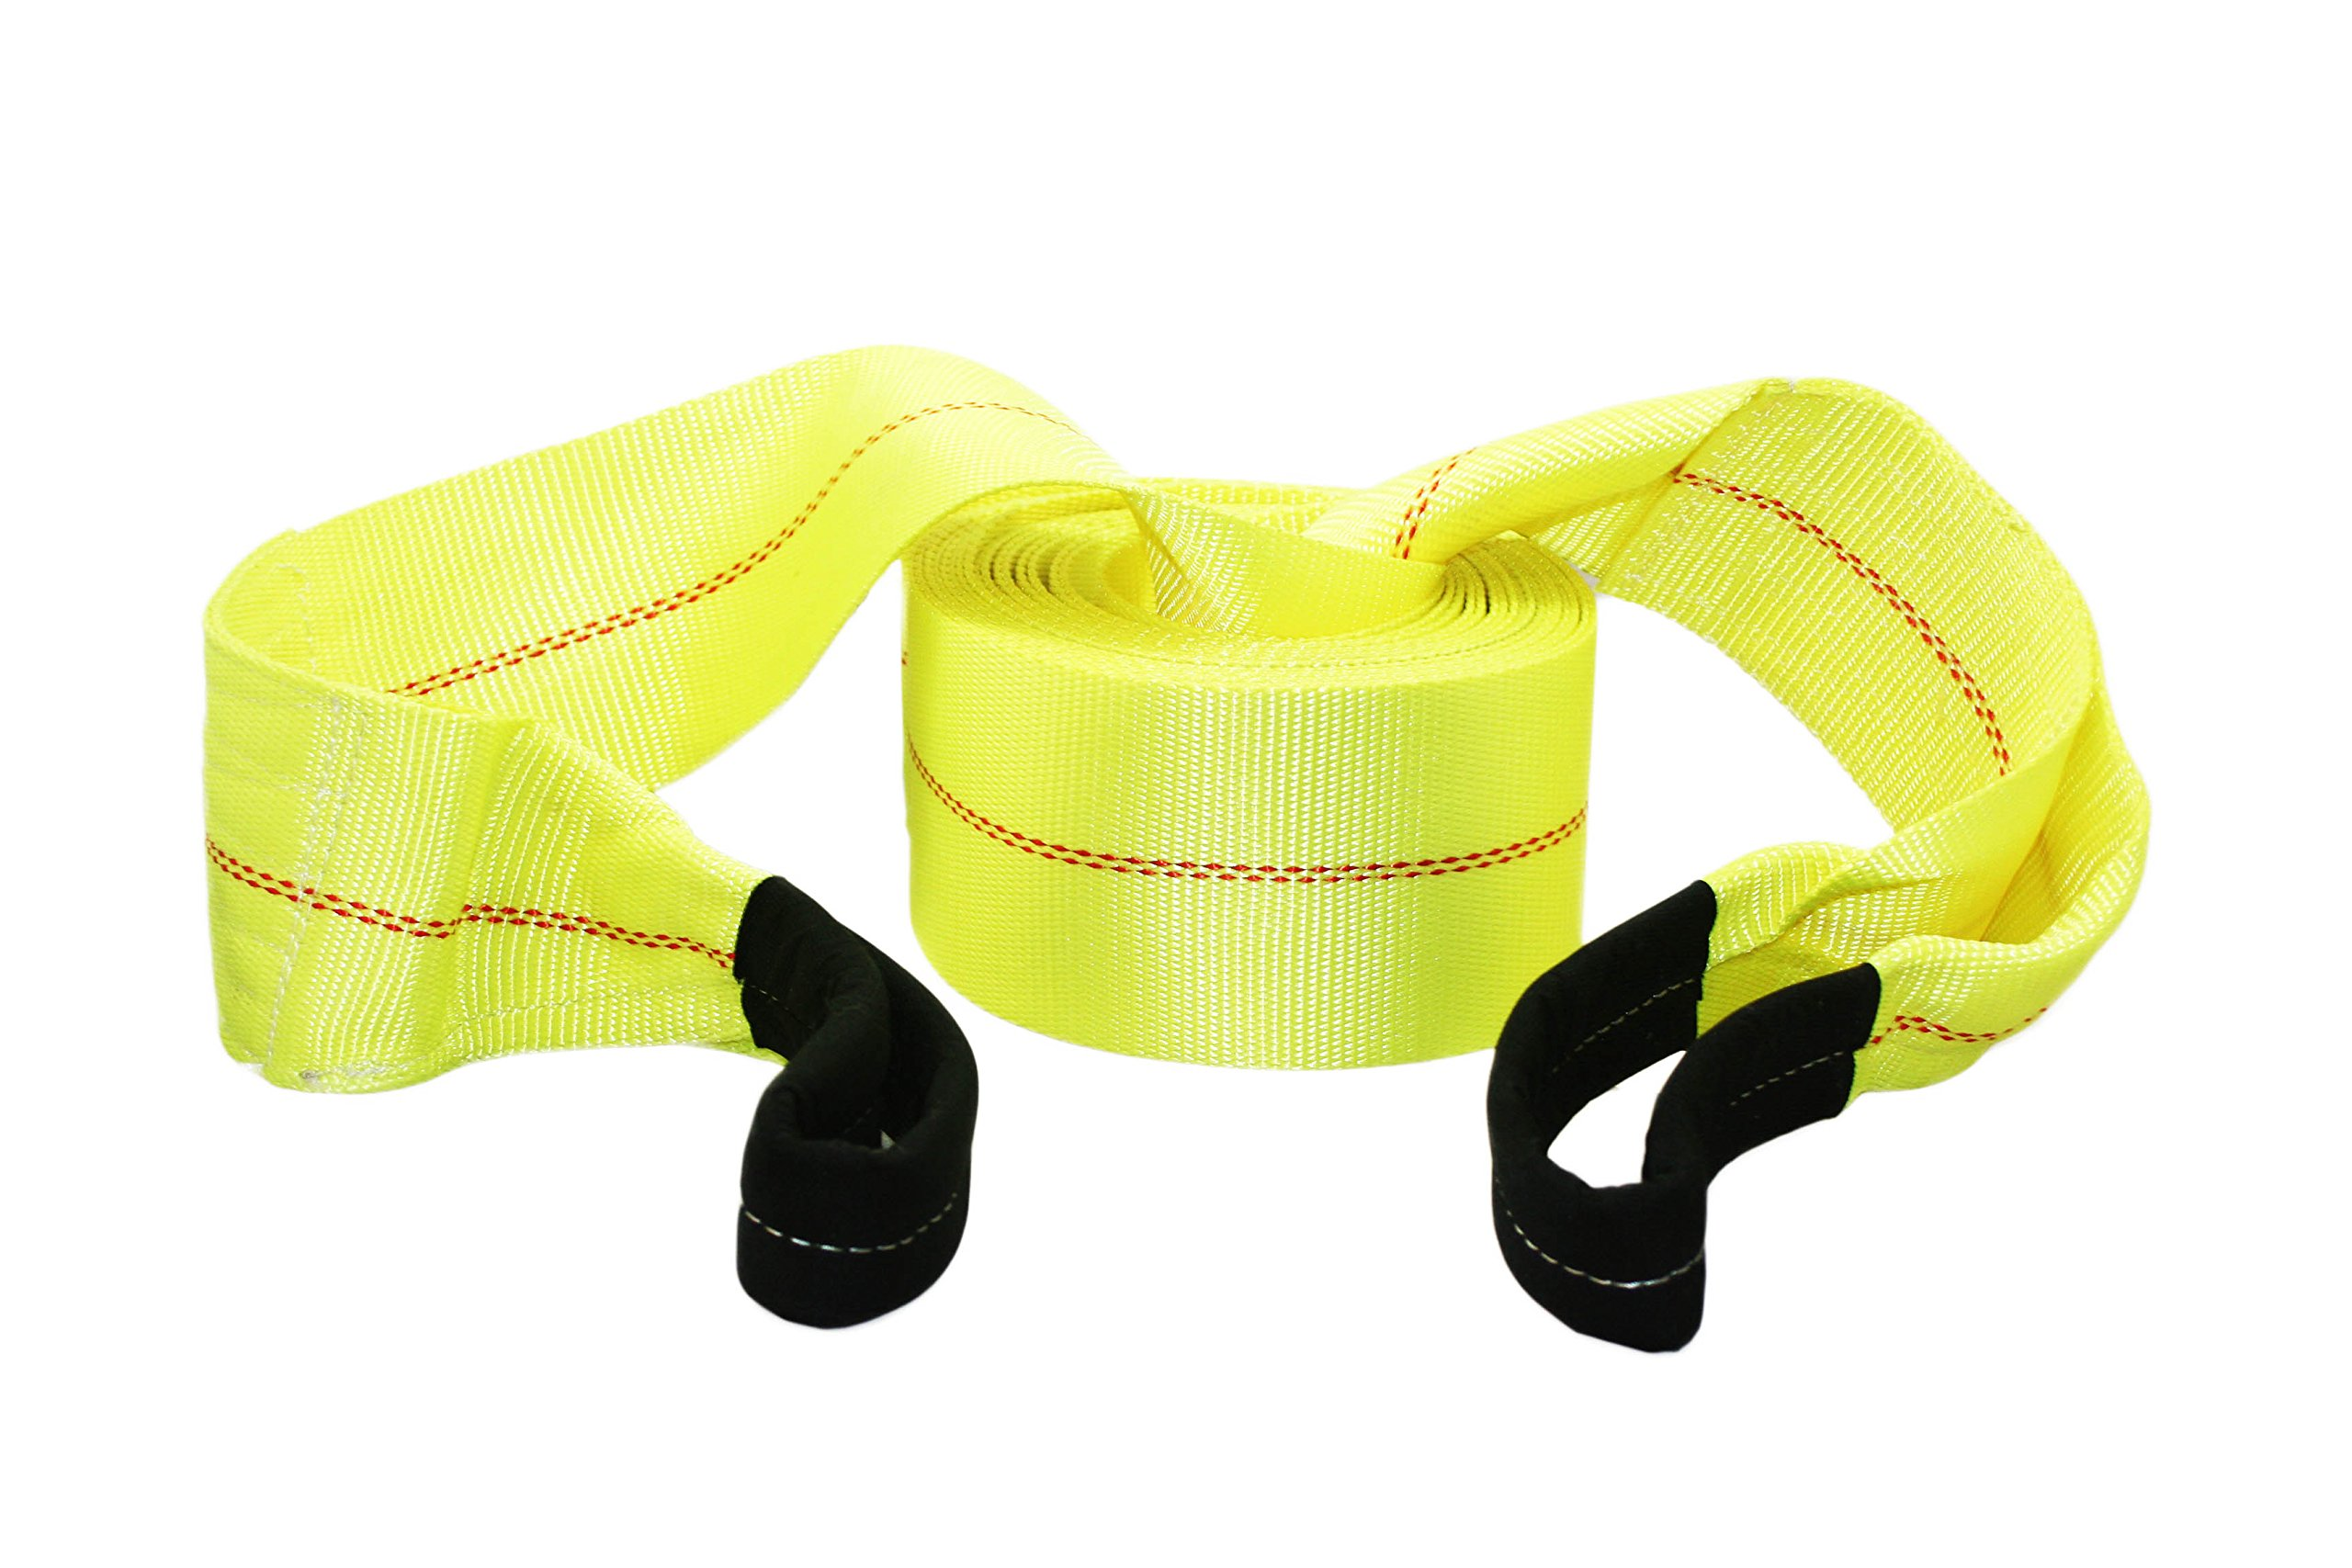 ABN Tow Winch Rope with Loops - Offroad Vehicle Recovery Strap - 30 Feet x 4in - 20,000 lbs Pound Towing Capacity by ABN